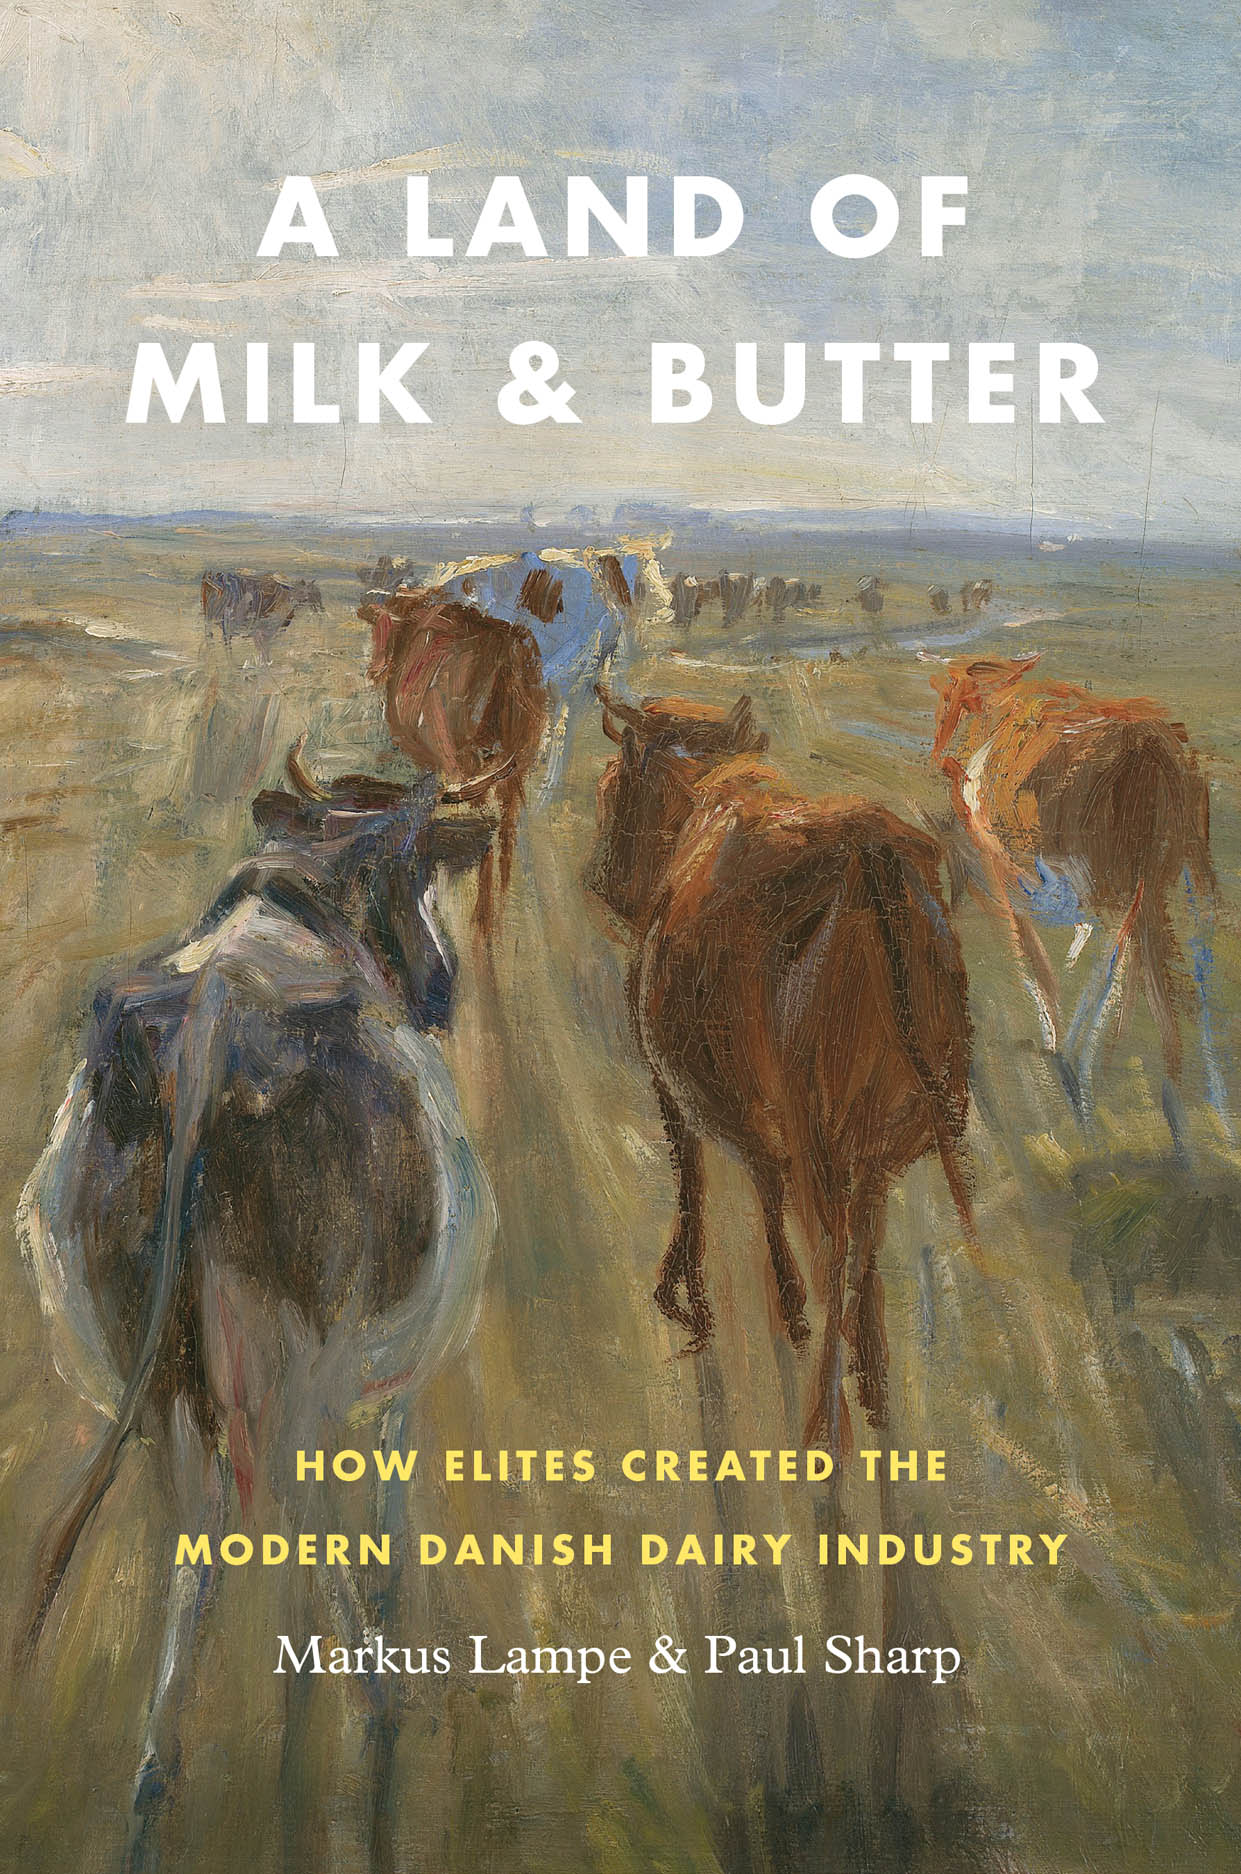 A Land of Milk and Butter: How Elites Created the Modern Danish Dairy Industry